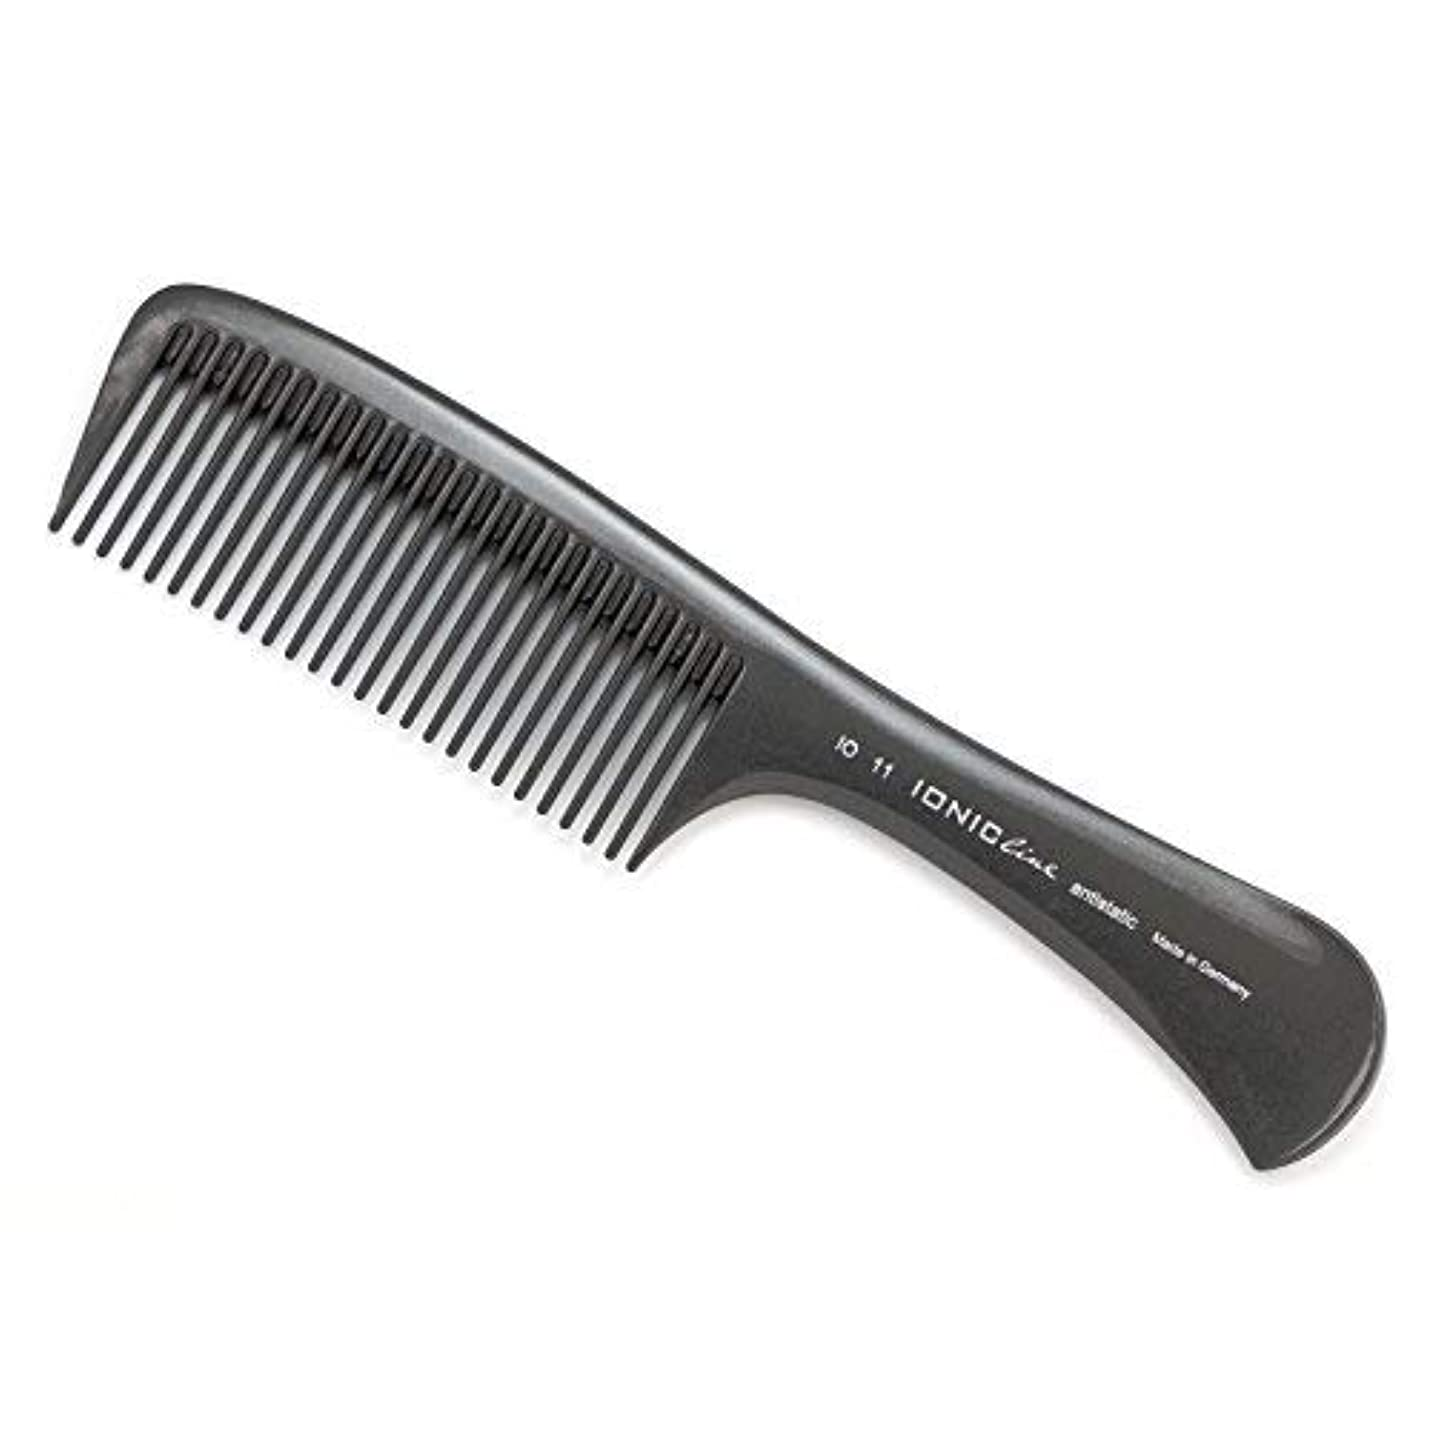 Hercules S?gemann IONIC Line Handle Comb, Big Working Comb   Ionized Thermoplastic - Made in Germany [並行輸入品]